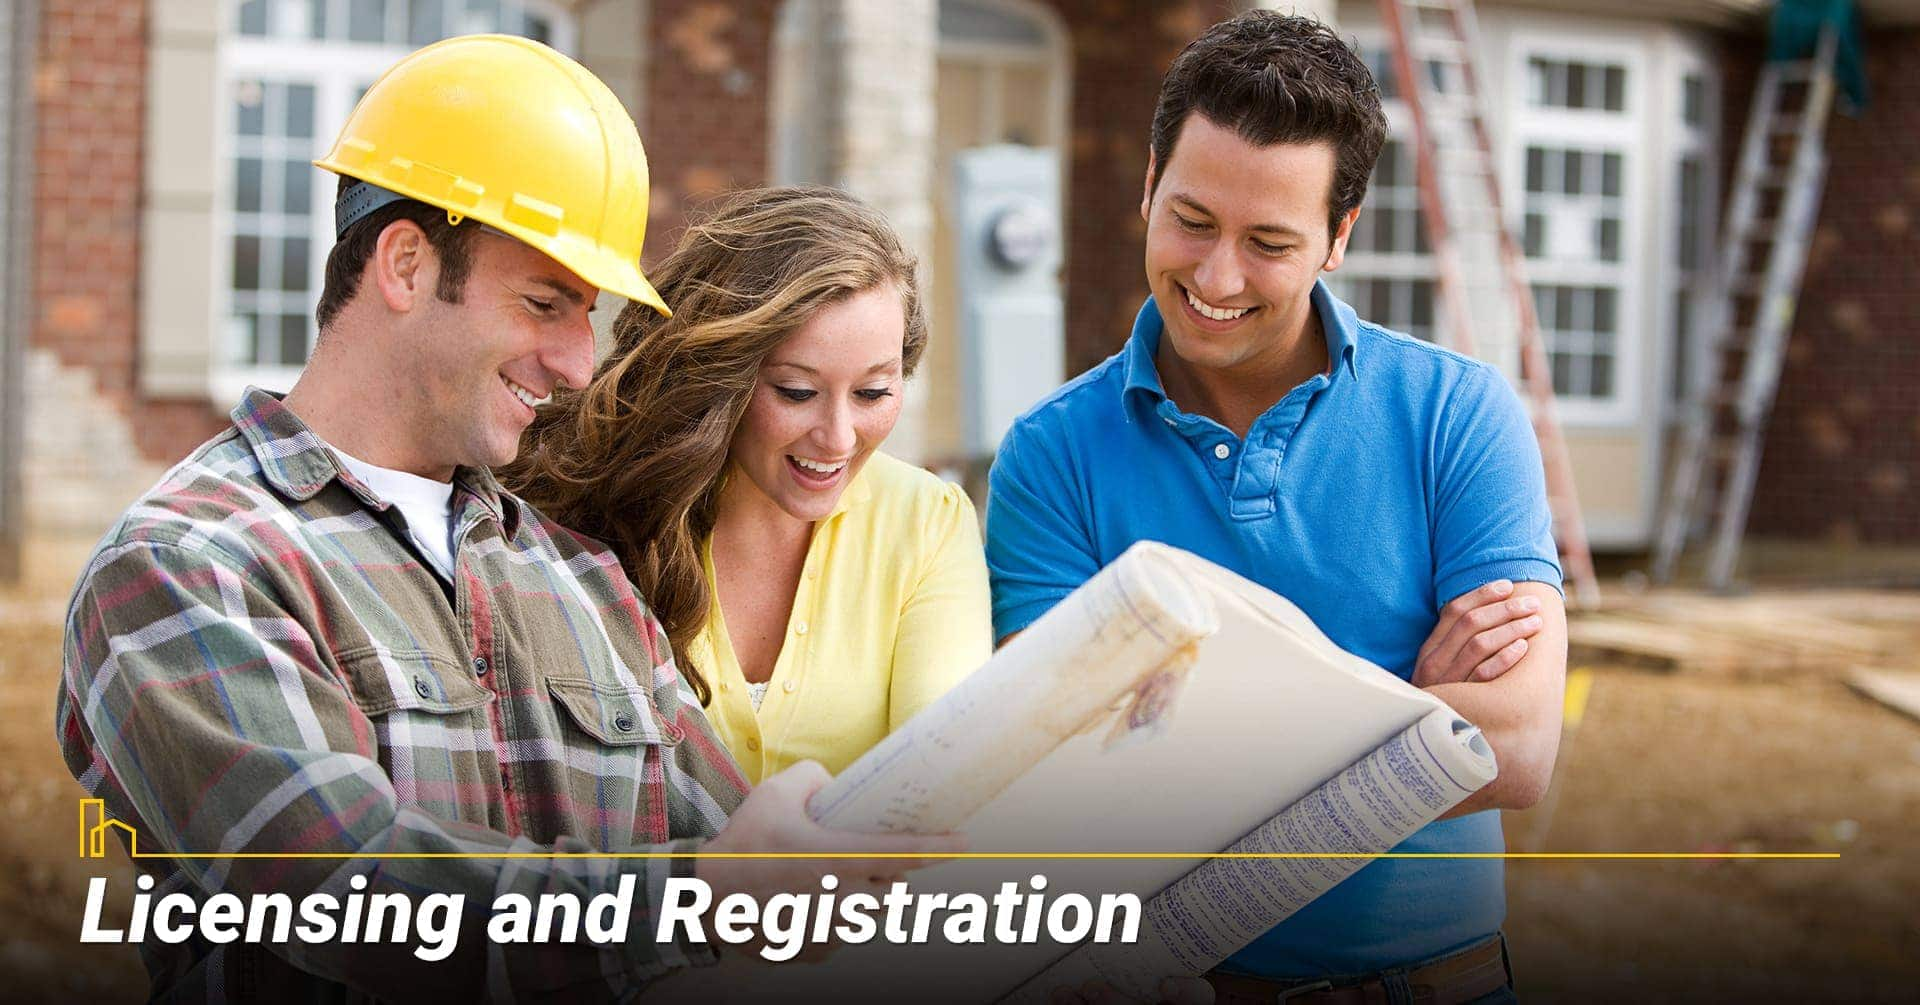 Licensing and Registration, licensed and registered contractors